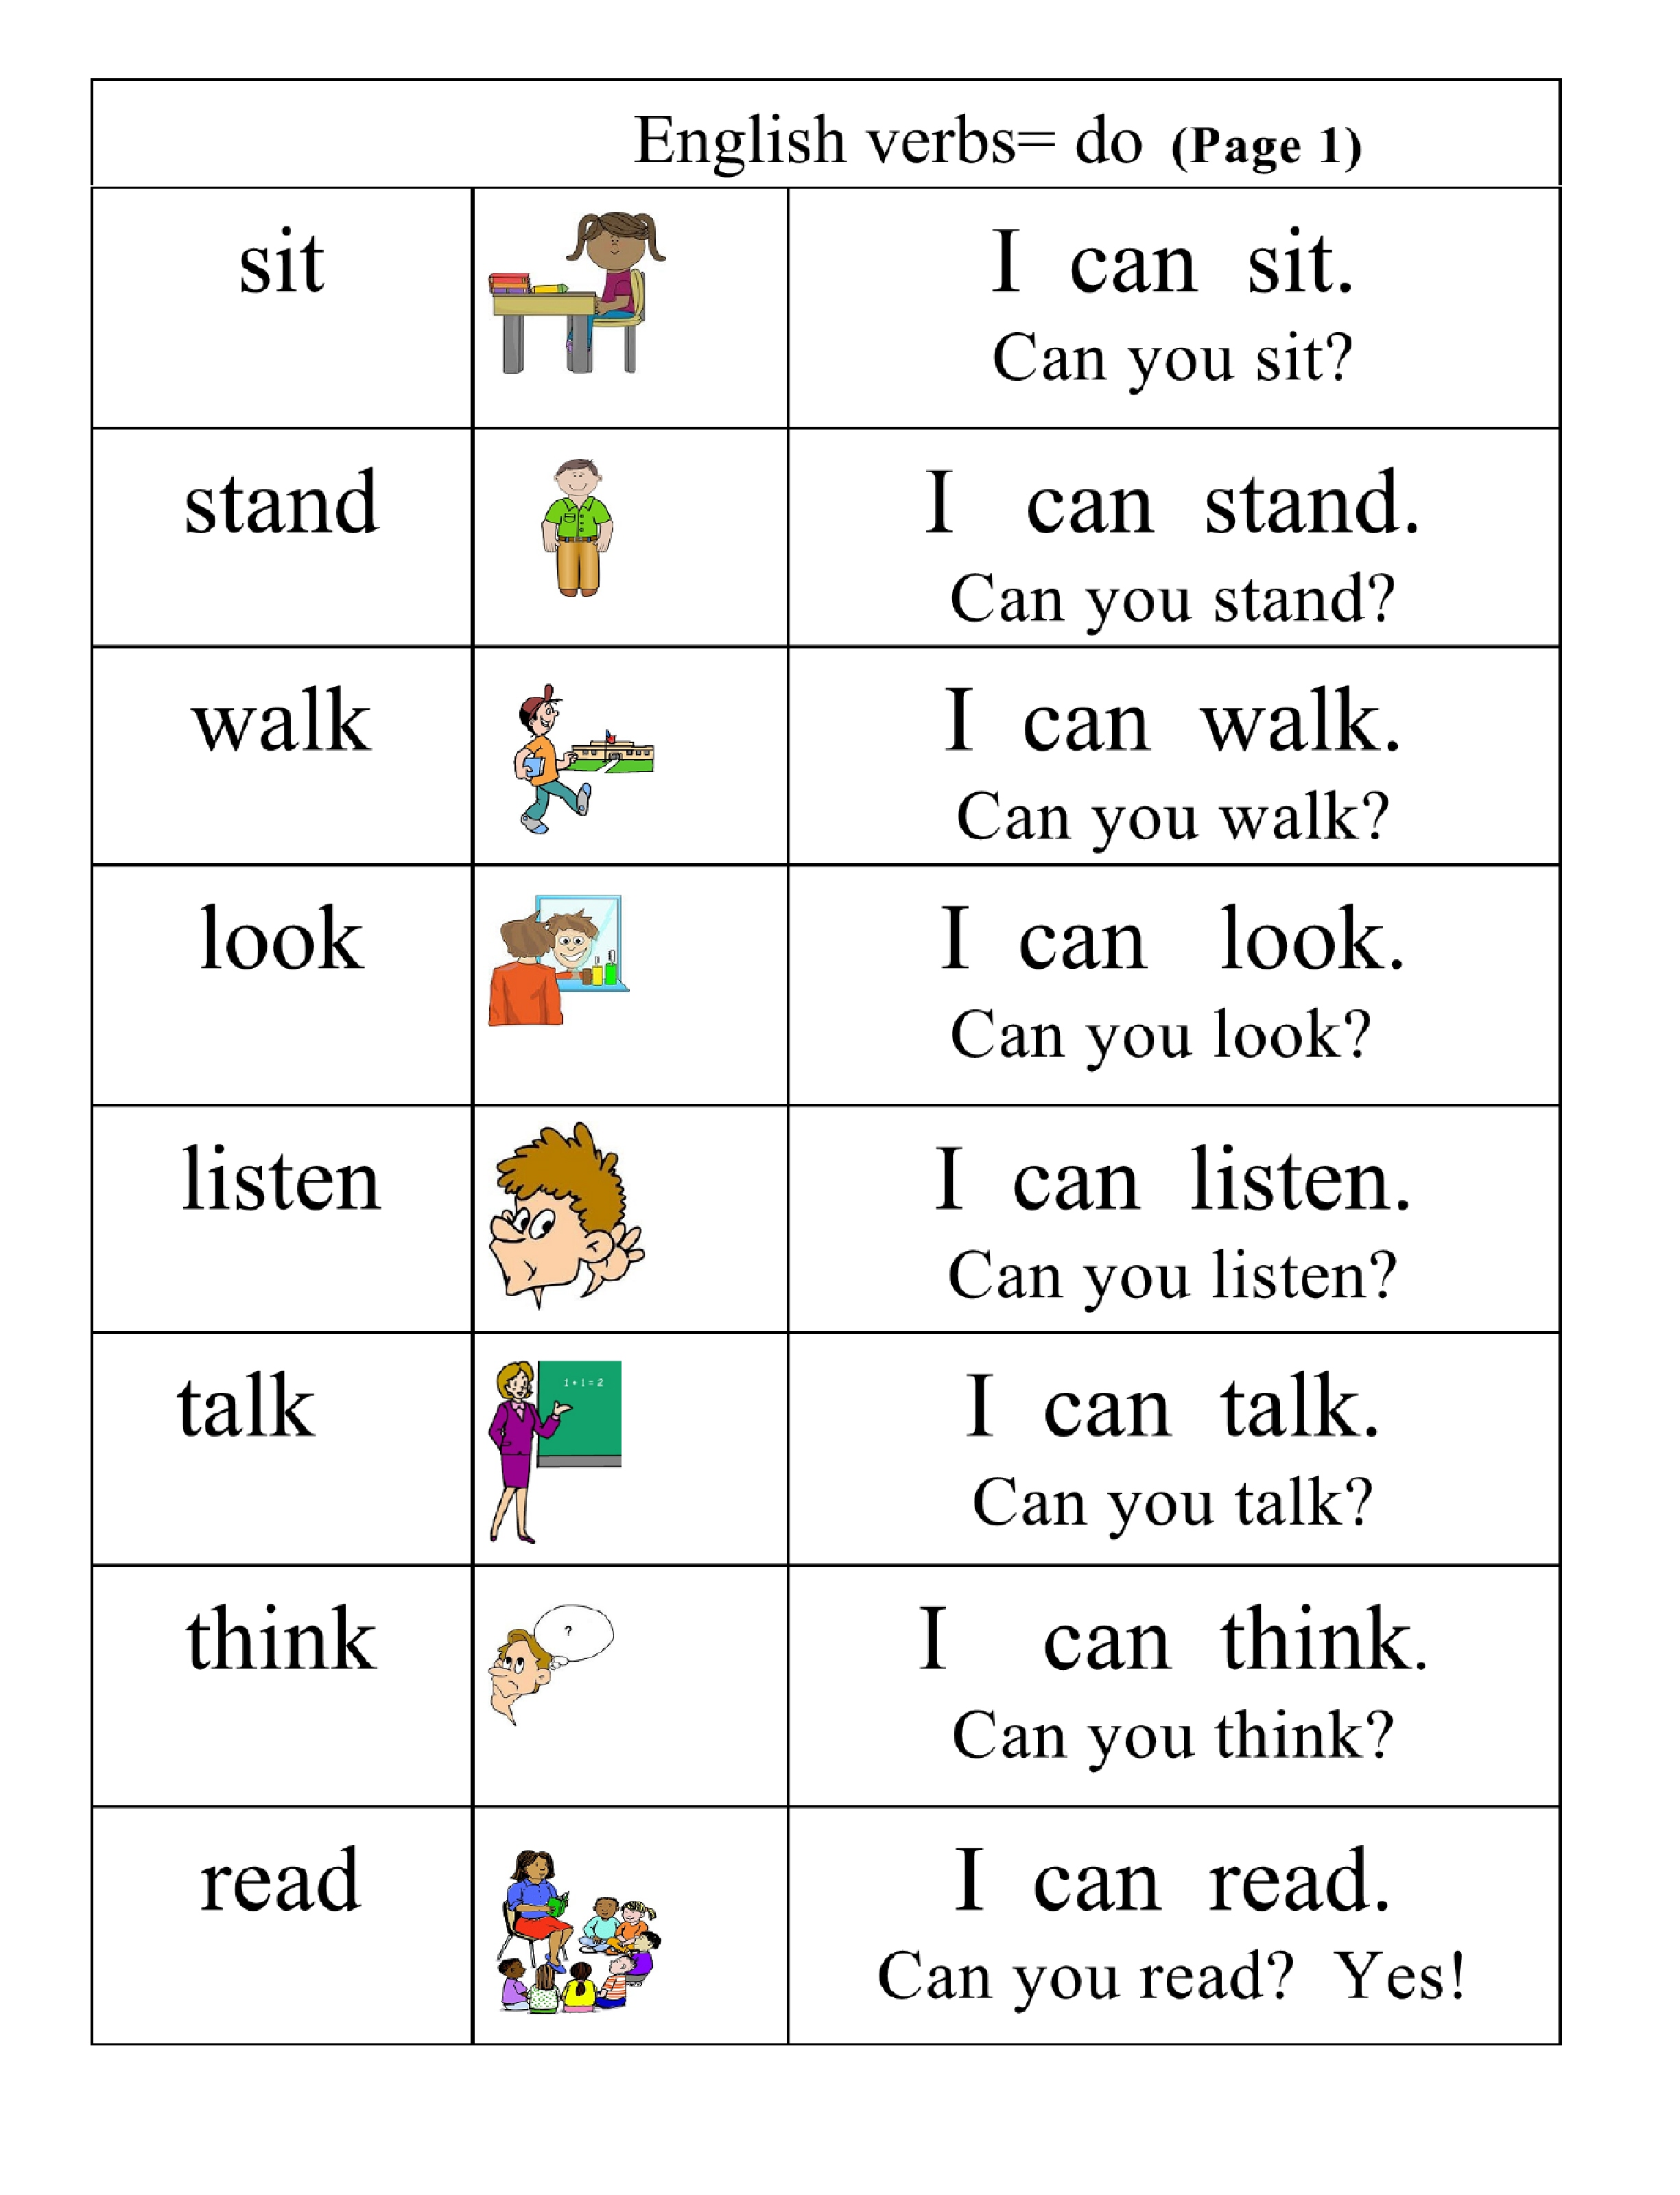 Worksheet Sentence Verb very basic verbs group 1 pictures words simple sentences page english pg sentence and question i can sit you sit